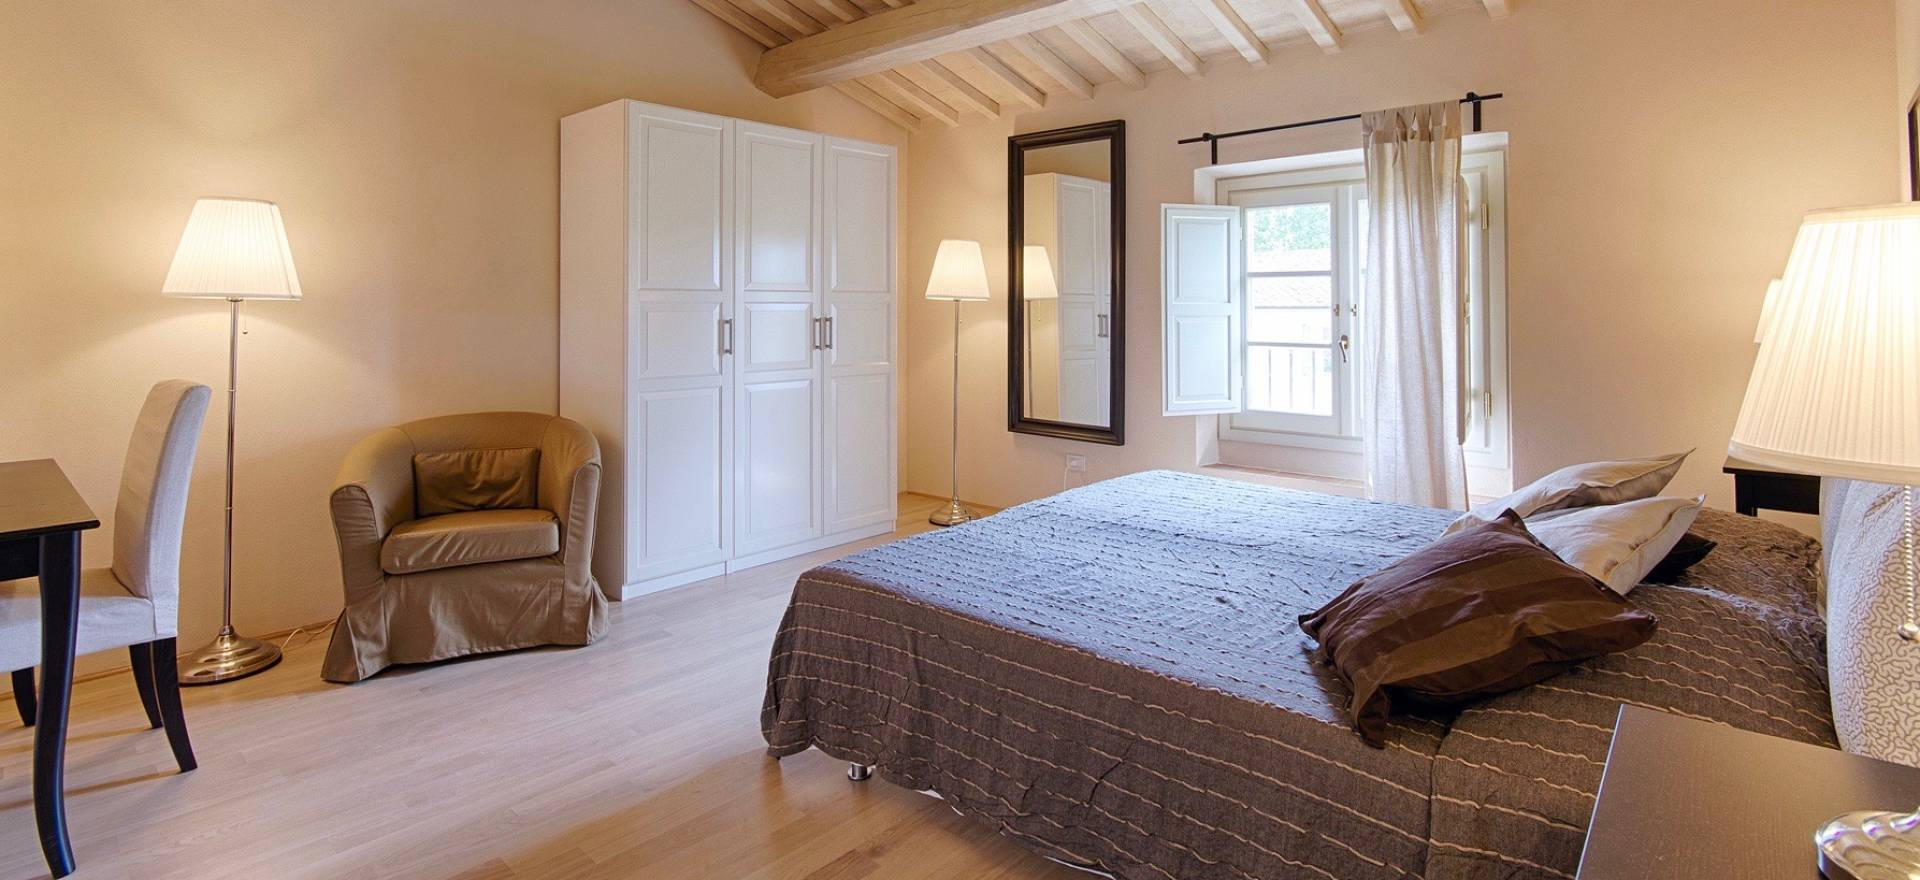 Agriturismo Tuscany Family friendly residence in Tuscany close to the beach